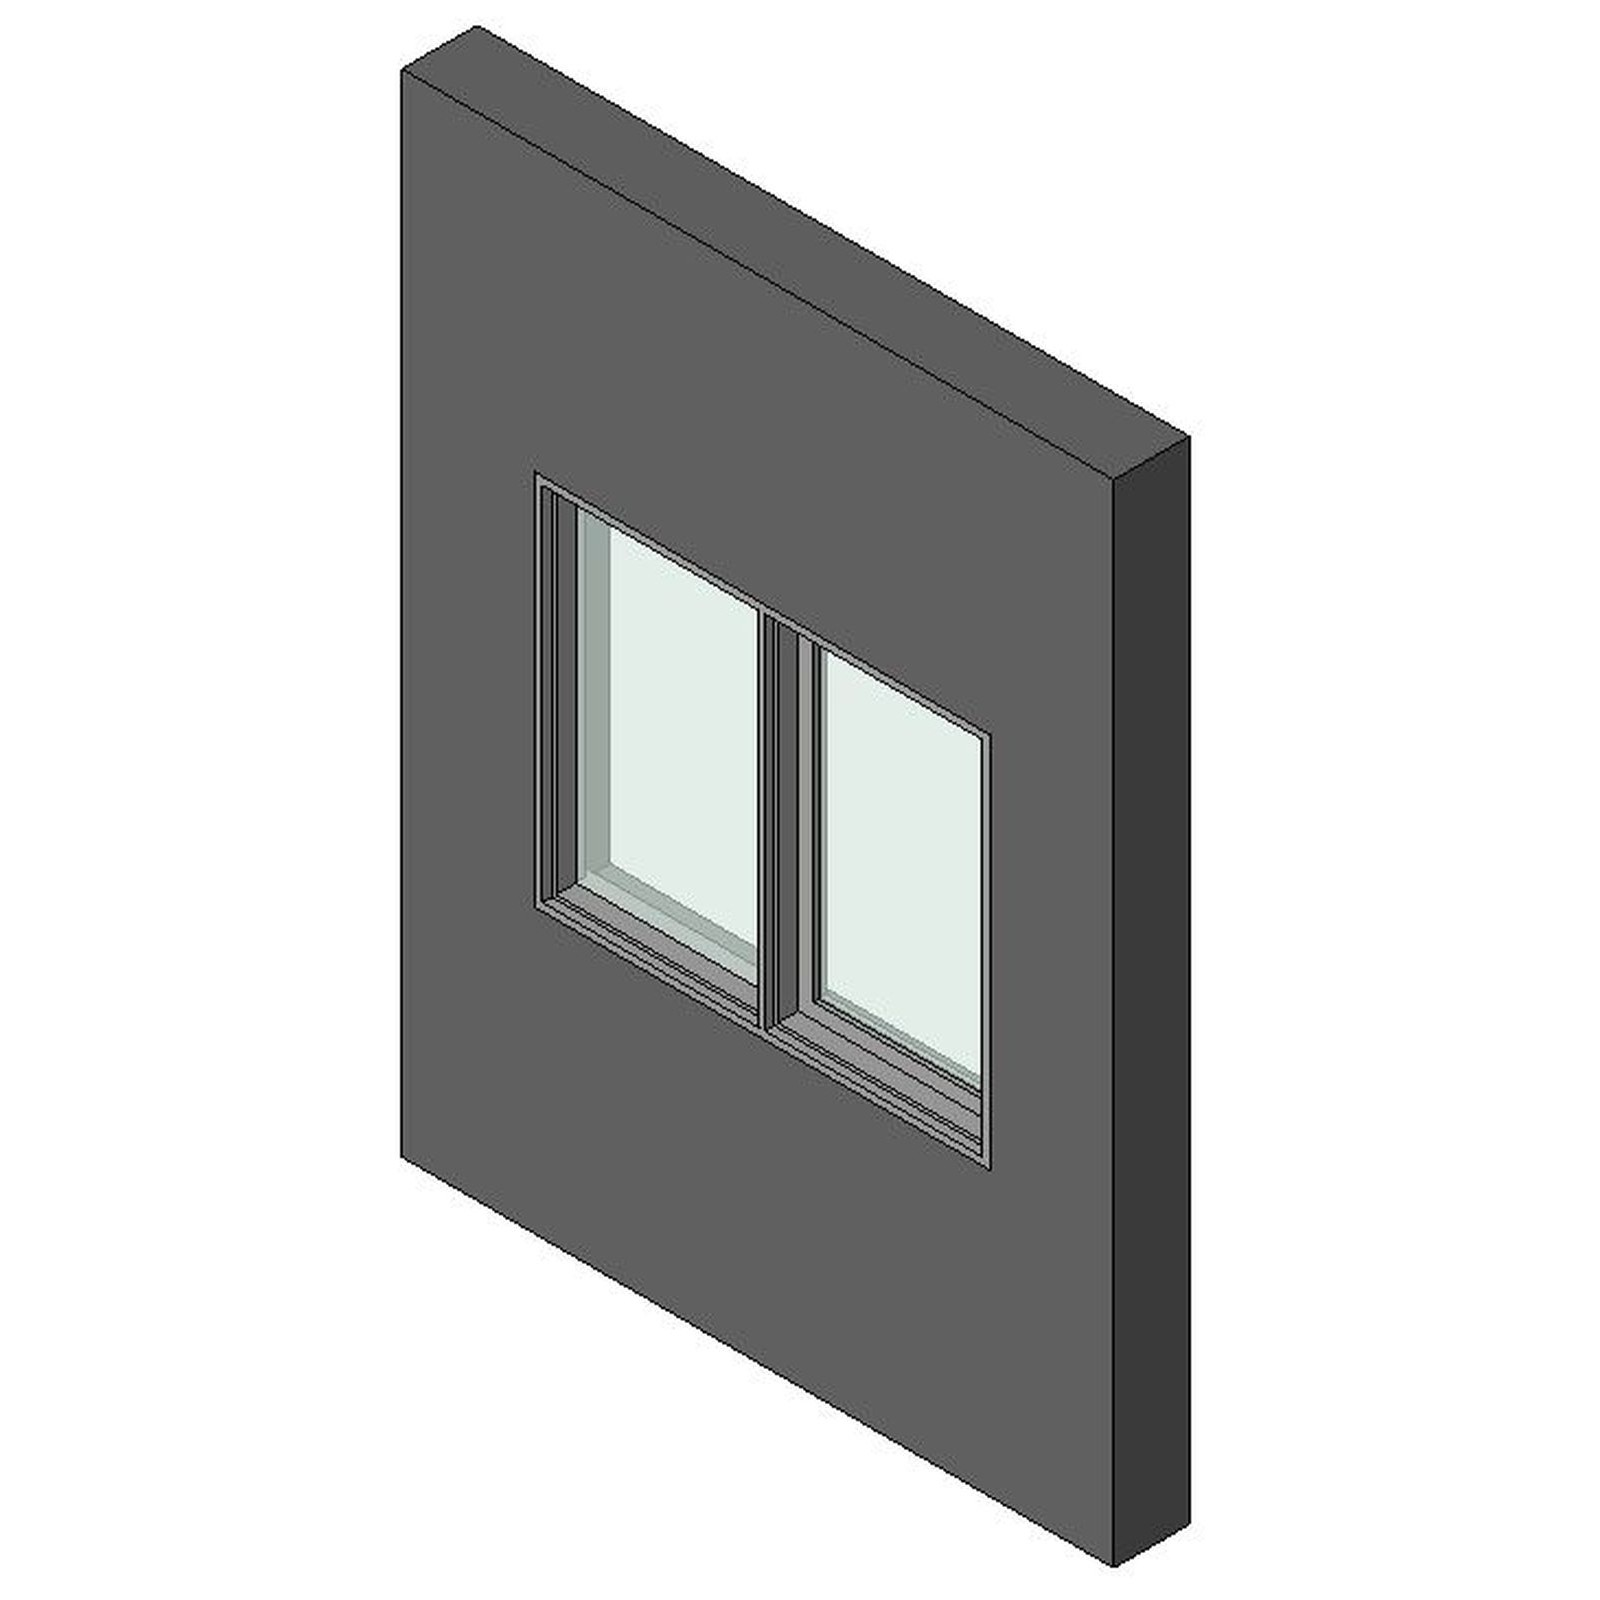 Timber Casement Window With Fixed Sash Design Content